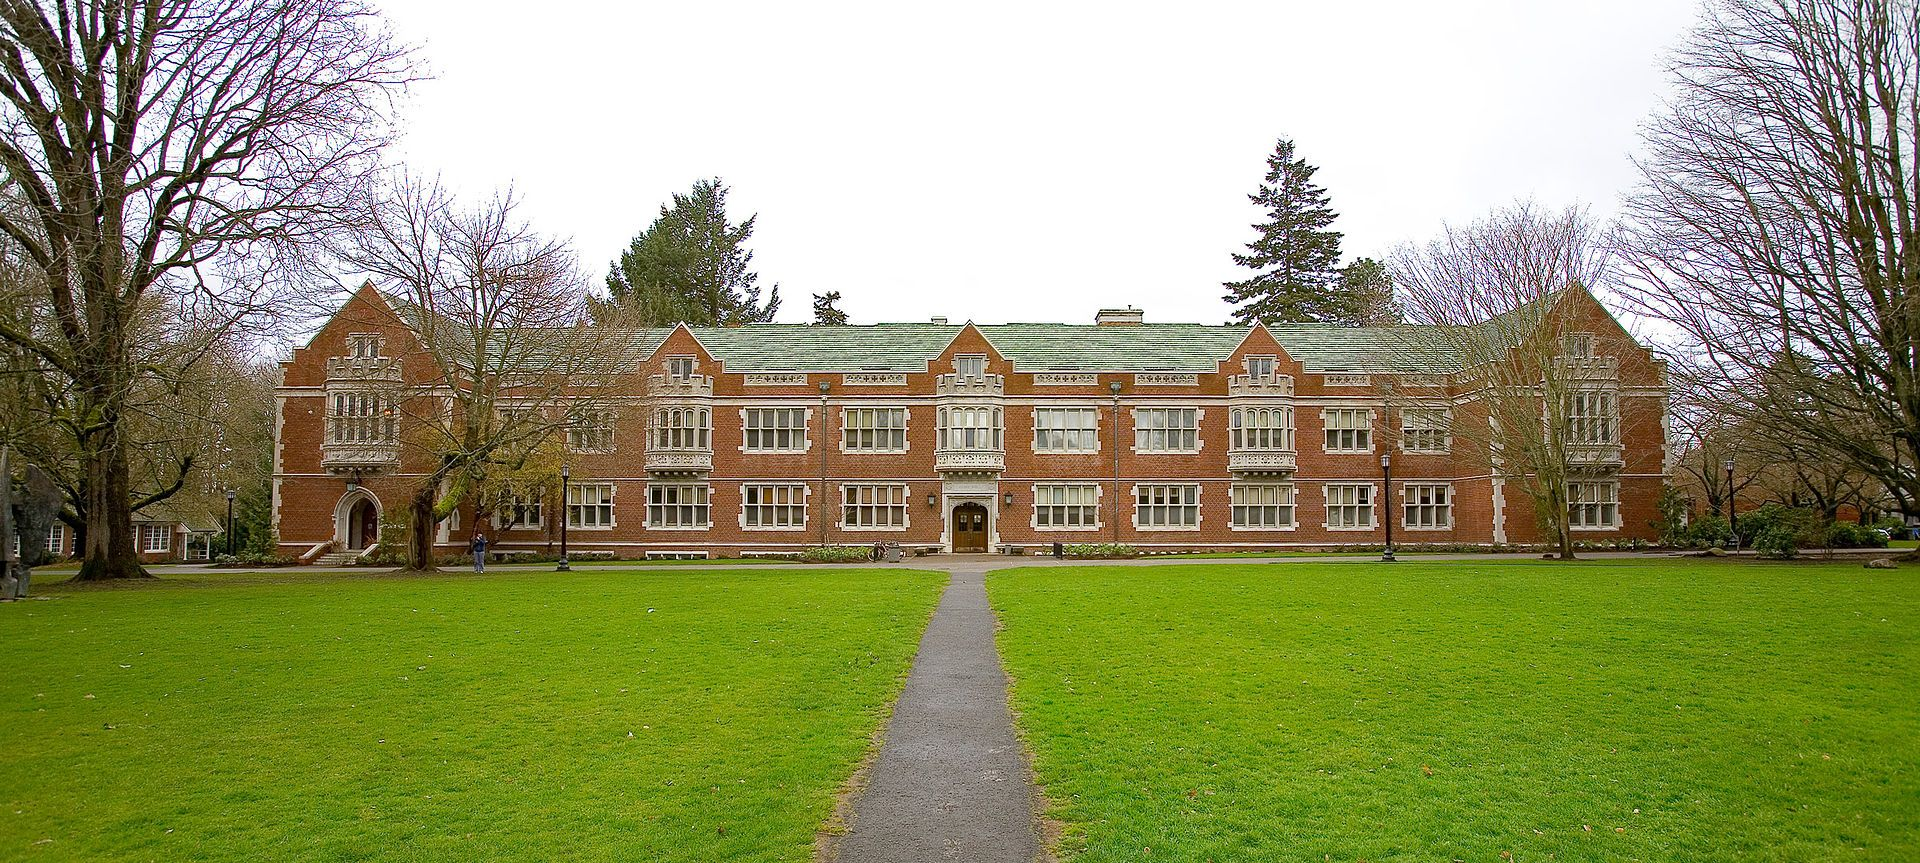 Reed college admissions essay